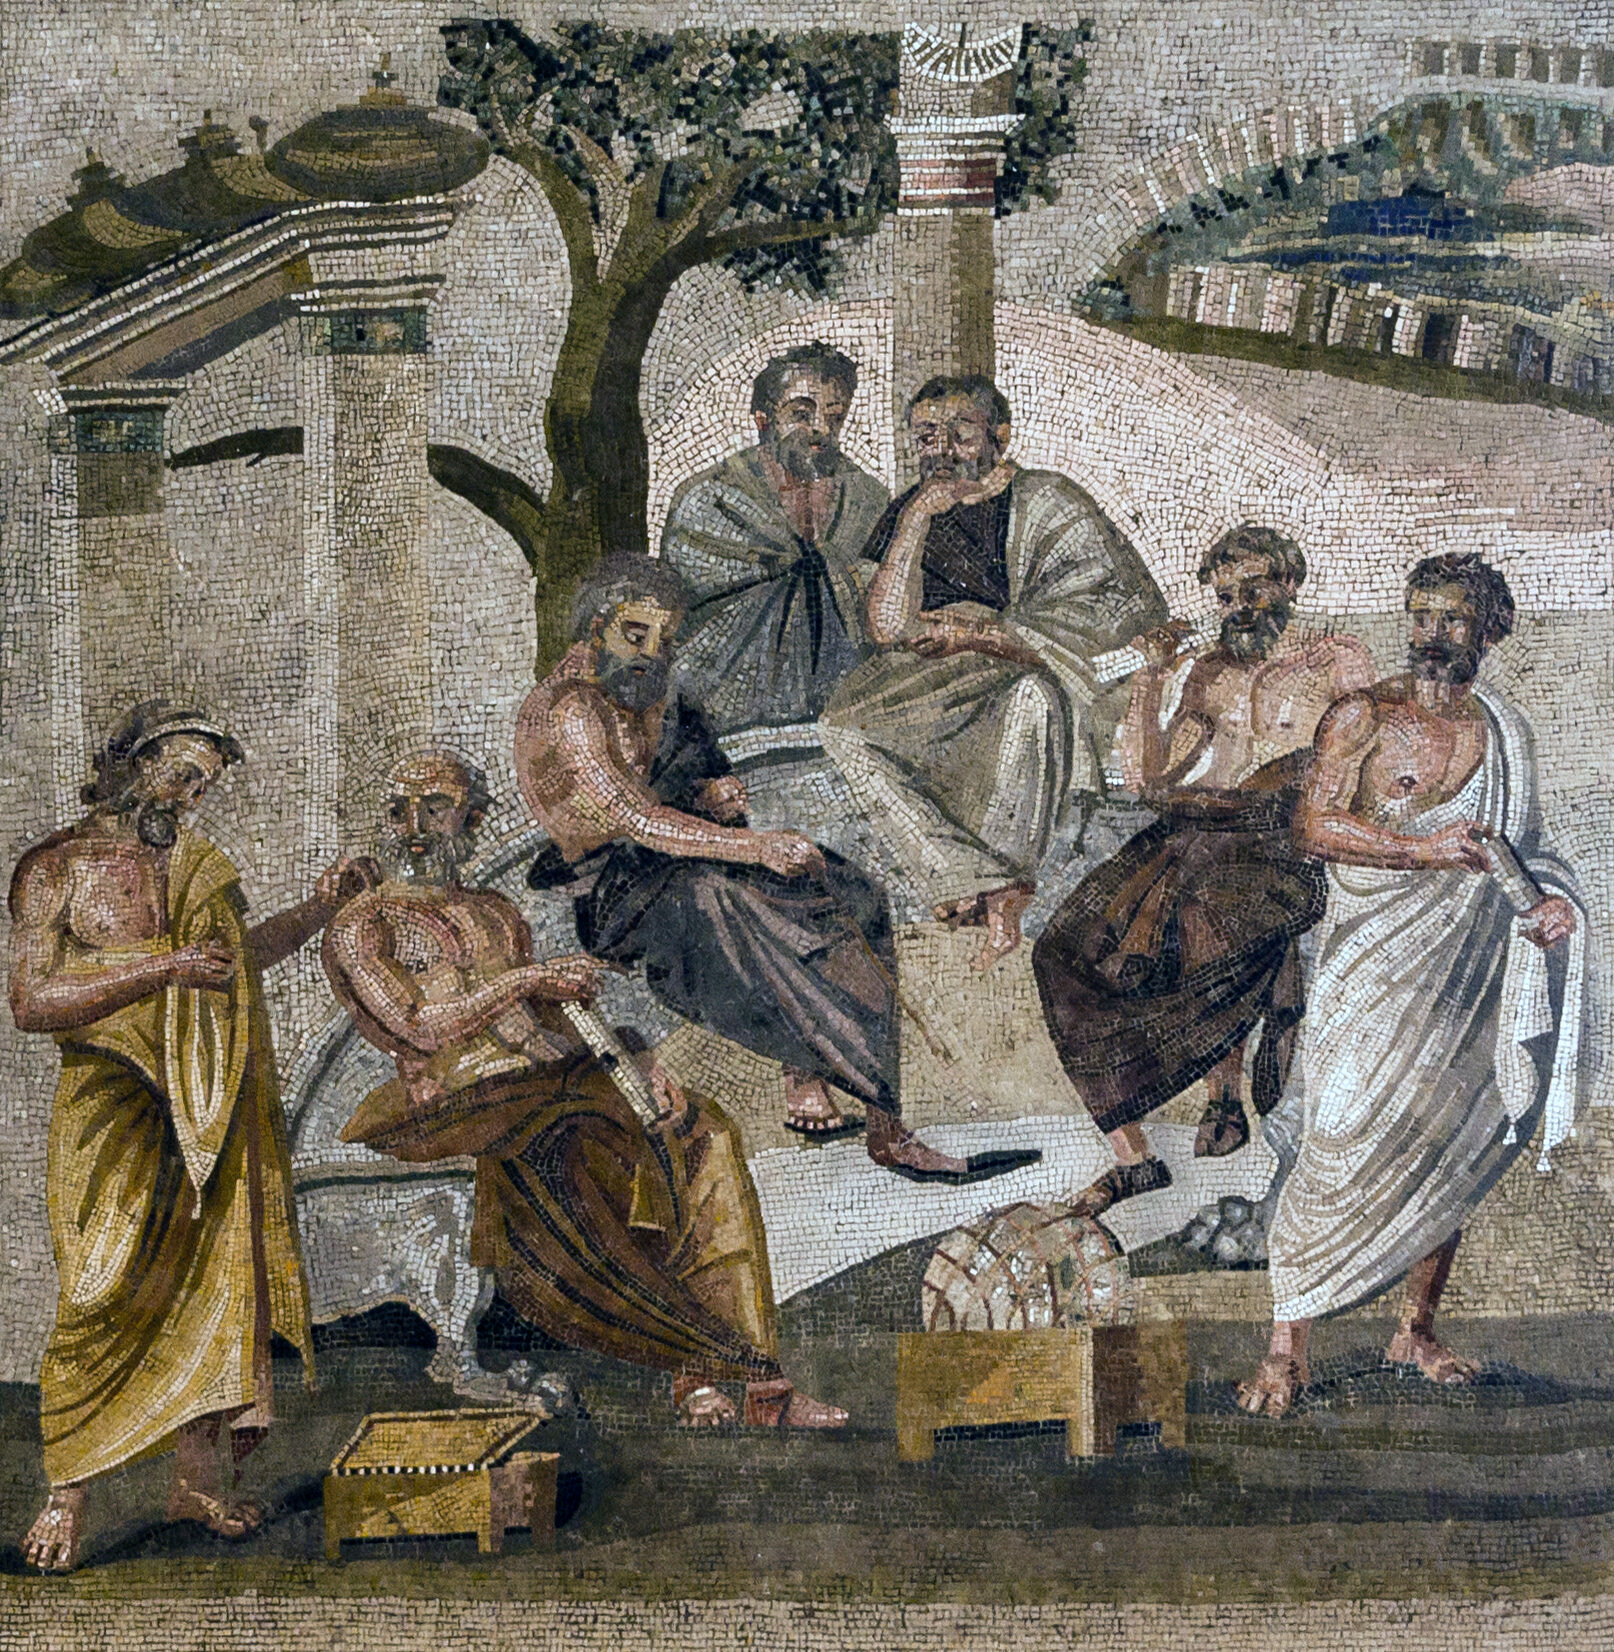 Mosaic from Pompeii depicting the Academy of Plato Plato's Academy mosaic from Pompeii.jpg